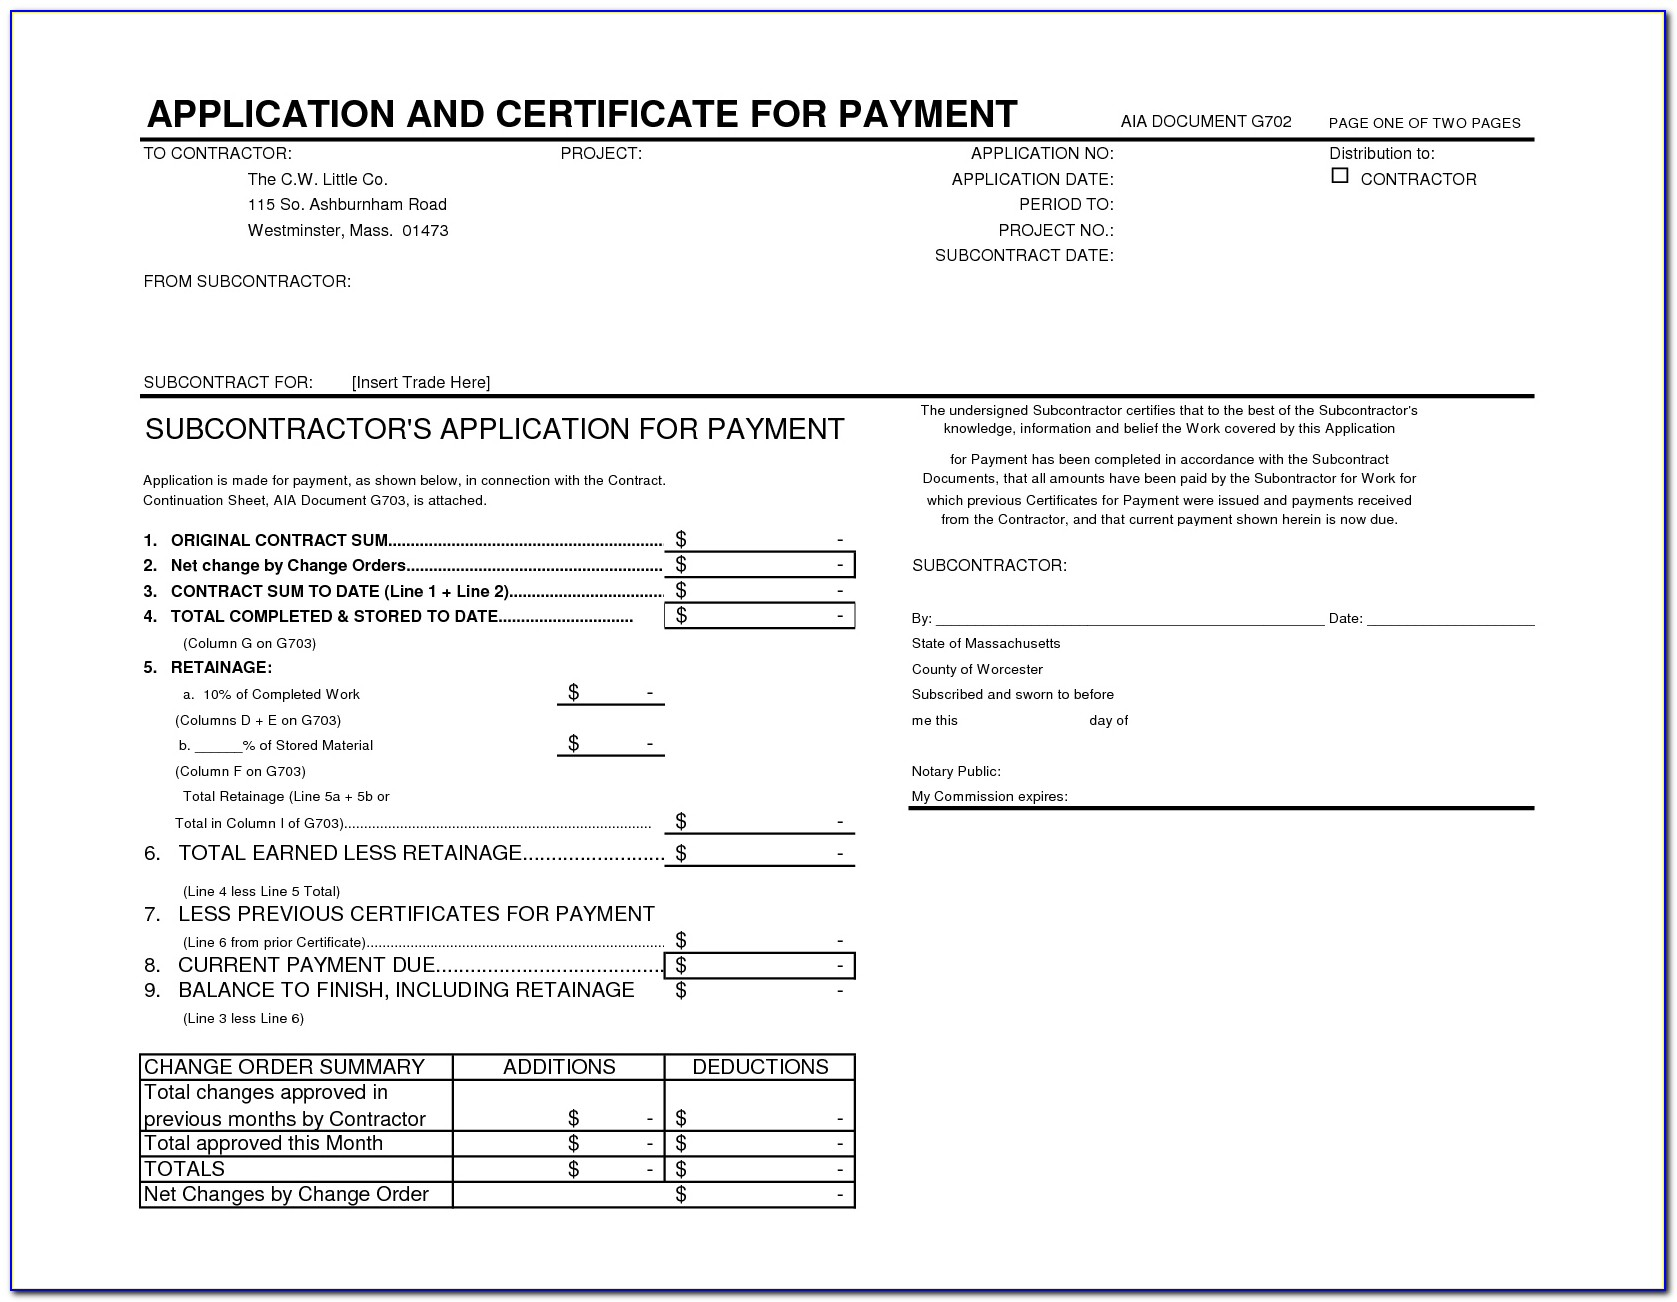 Aia Contract Form A101